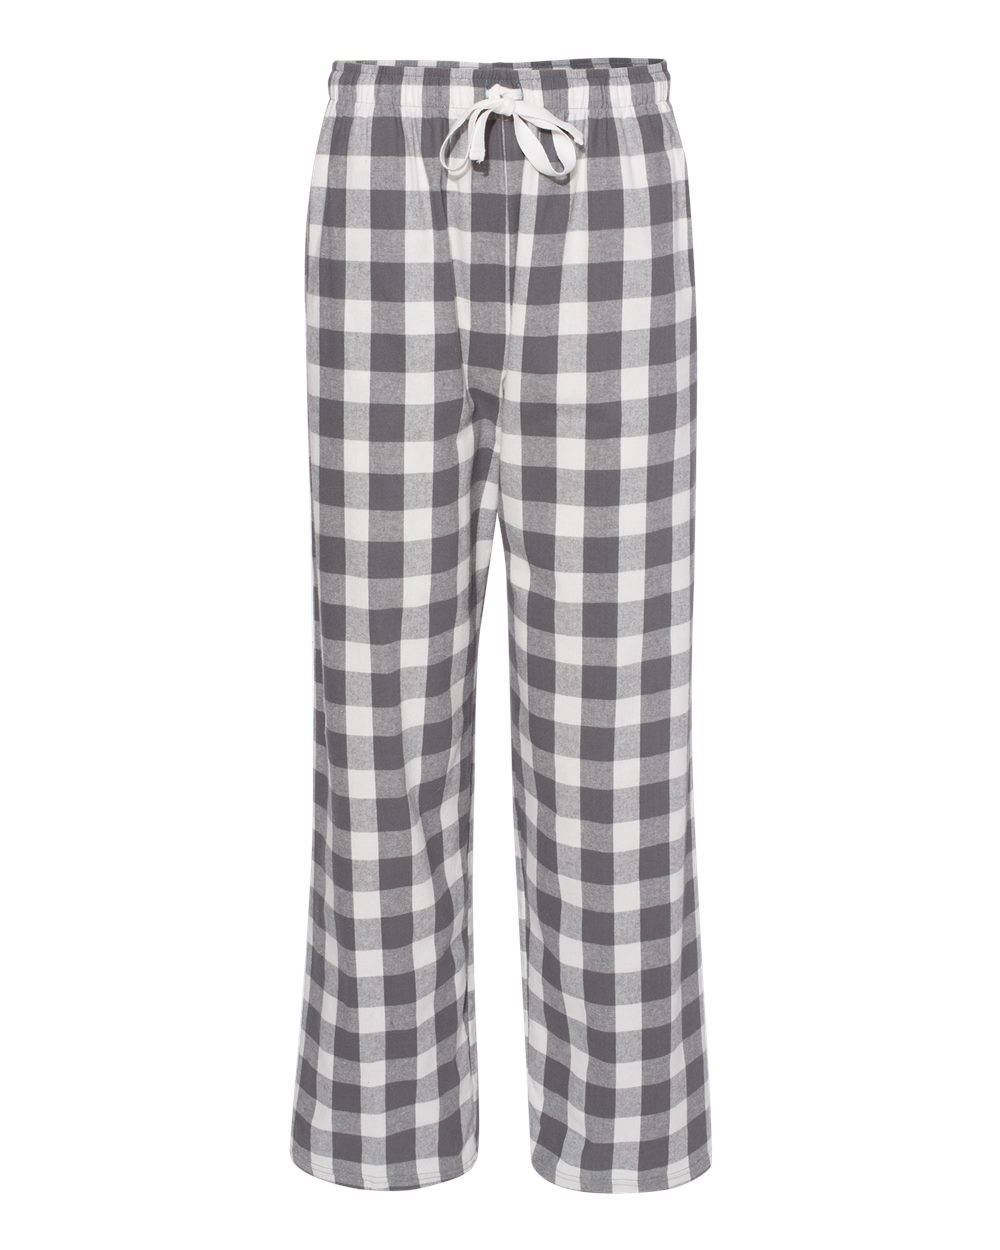 Boxercraft-Unisex-Flannel-Pants-With-Pockets-Pajama-Pants-F20-up-to-2XL thumbnail 33